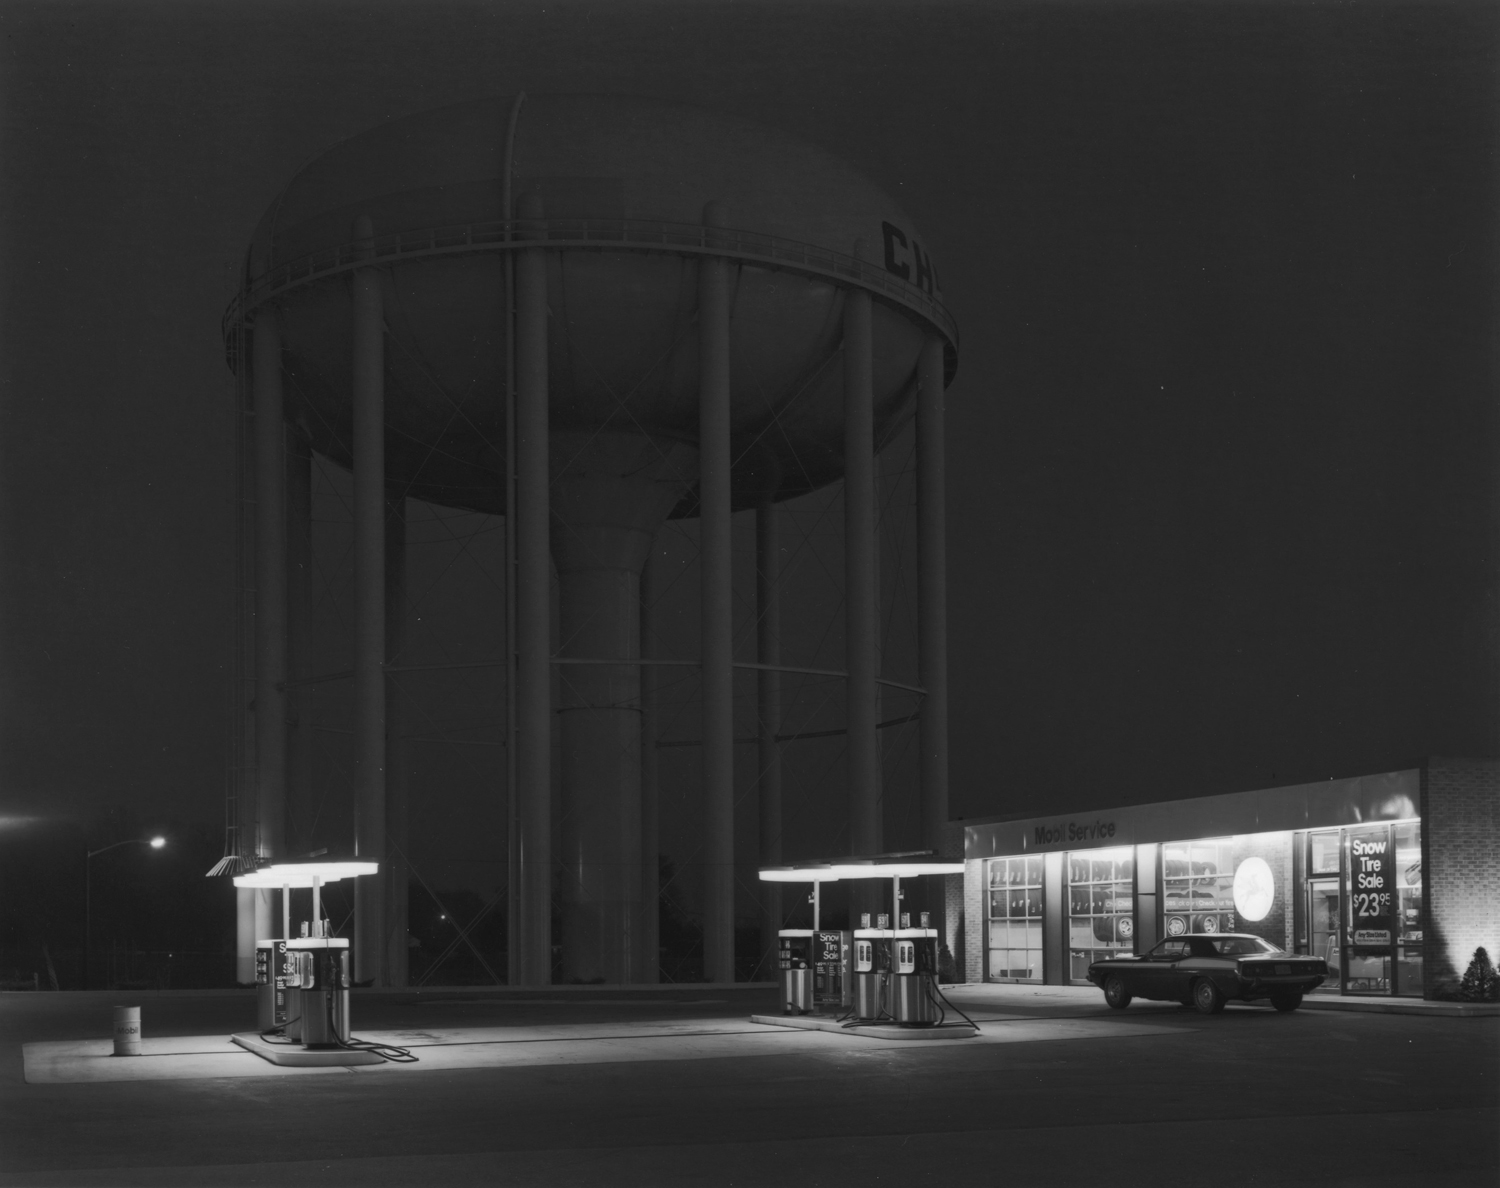 Exhibition. George Tice,  60 Years of Photography.  Nailya Alexander Gallery, New York, New York. Over view until November 23, 2013. Pictured: Petit's Mobil Station, Cherry Hill, NJ, 1974.